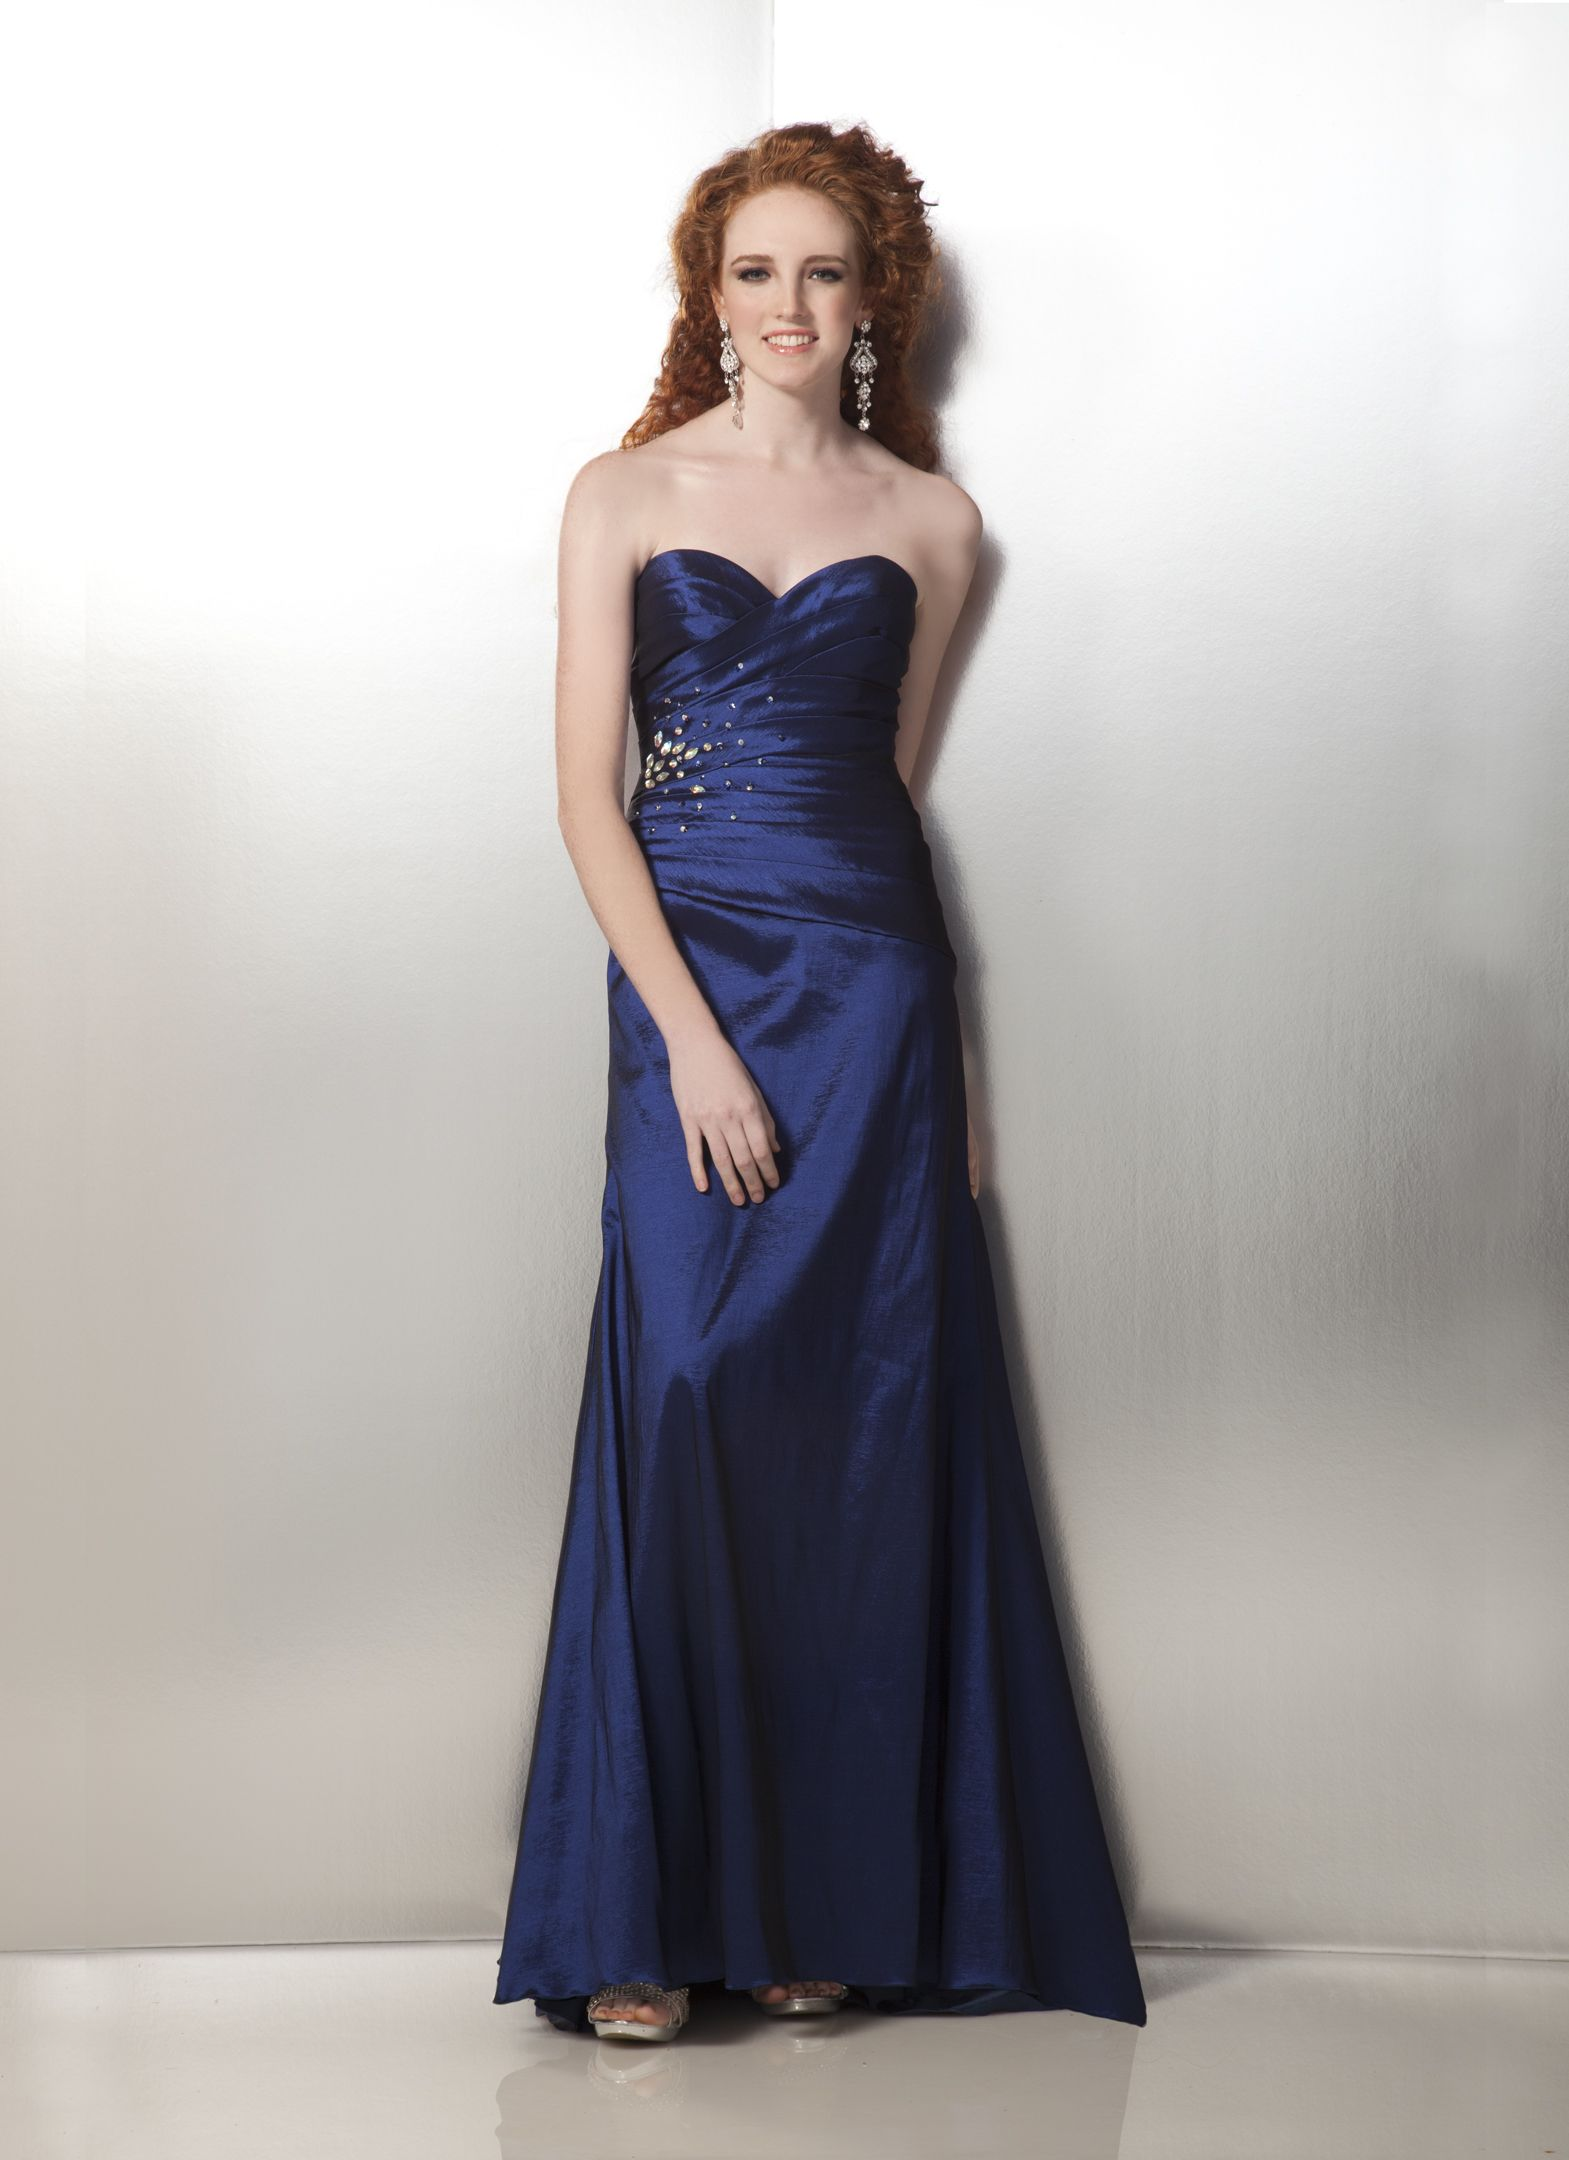 Clarisse style sweetheart neckline navy blue prom dress